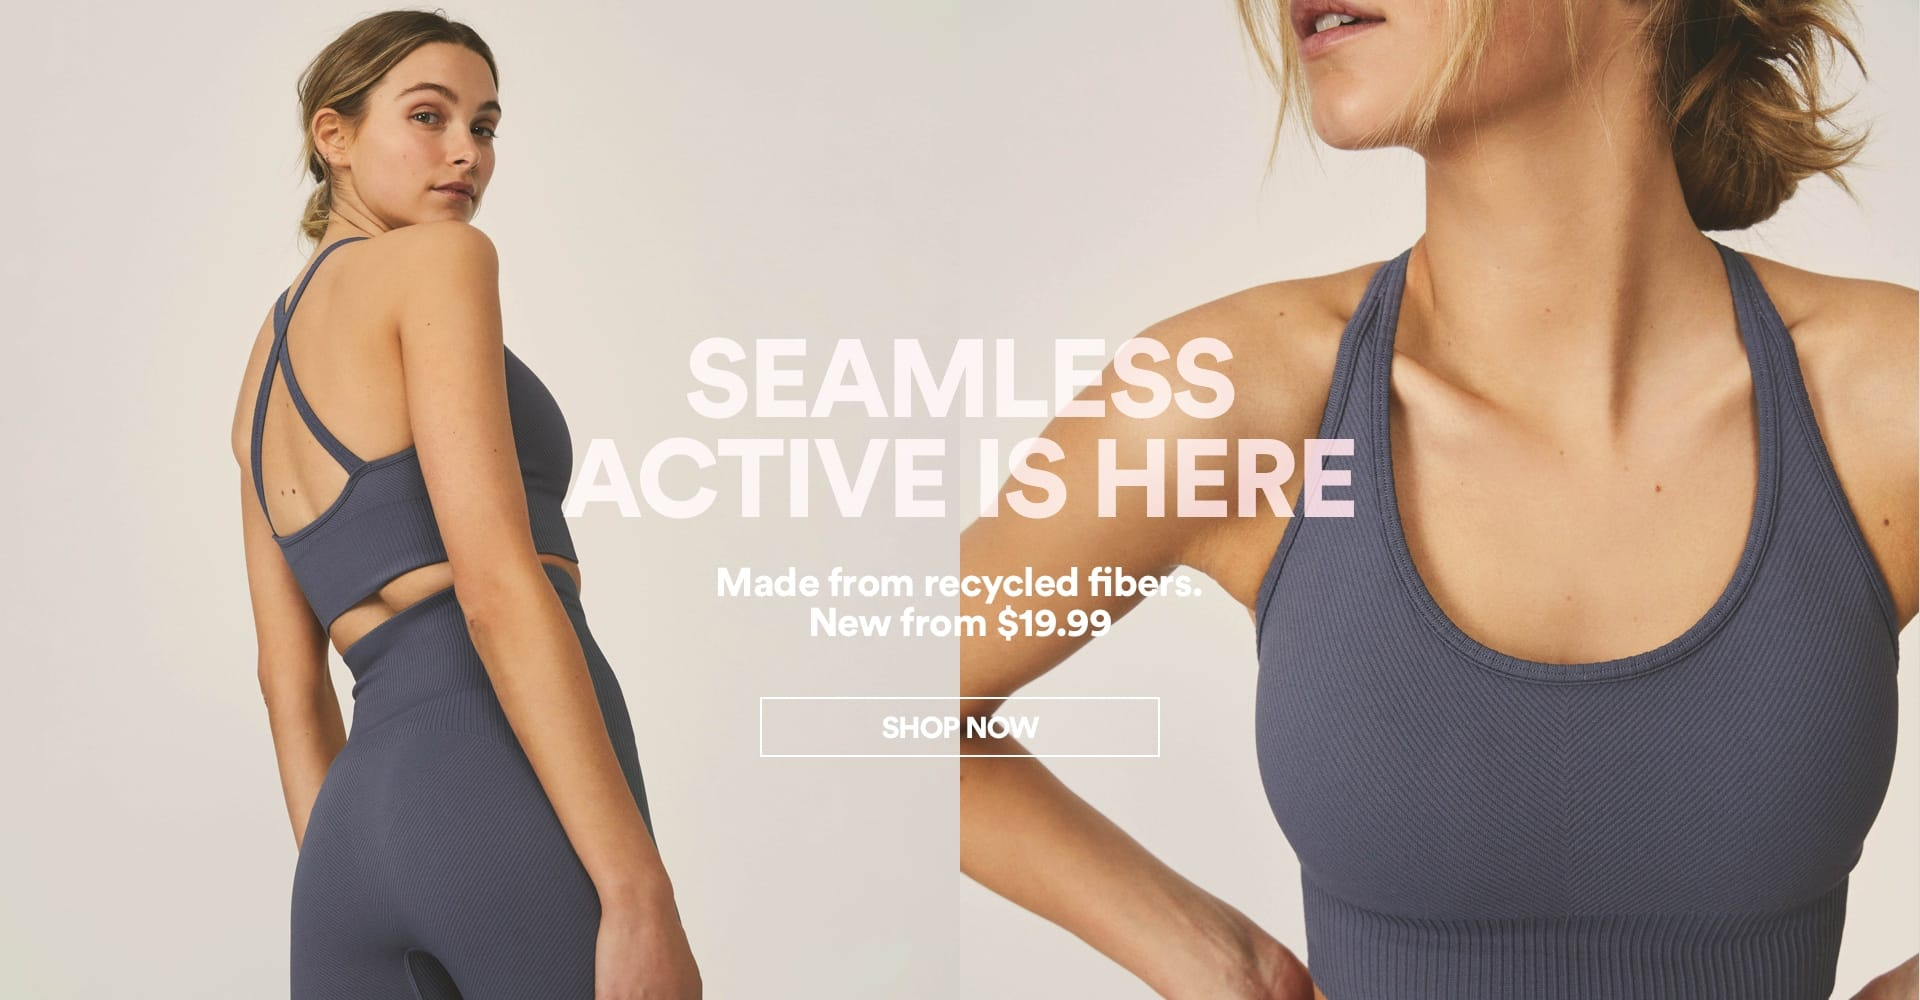 Seamless Active Is Here. Click To Shop